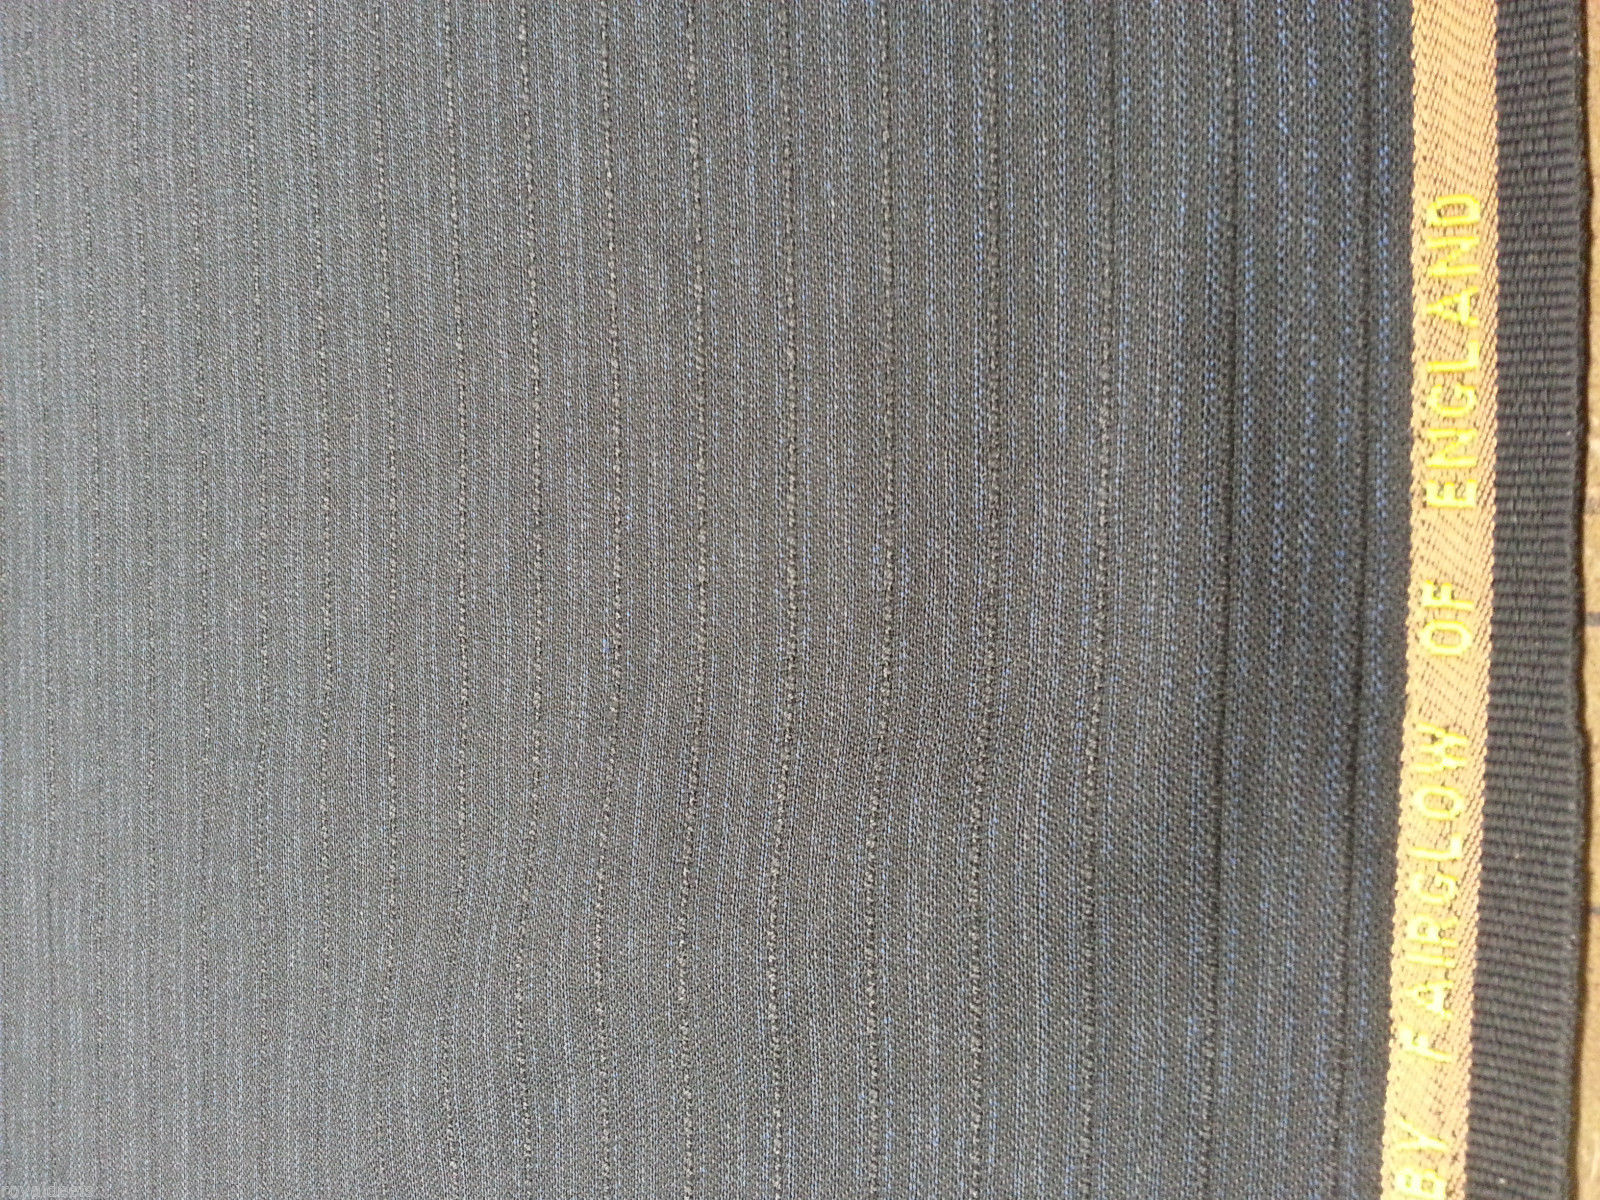 Superfine Blue Black English wool Suiting Fabric for men and women 9+ Yards